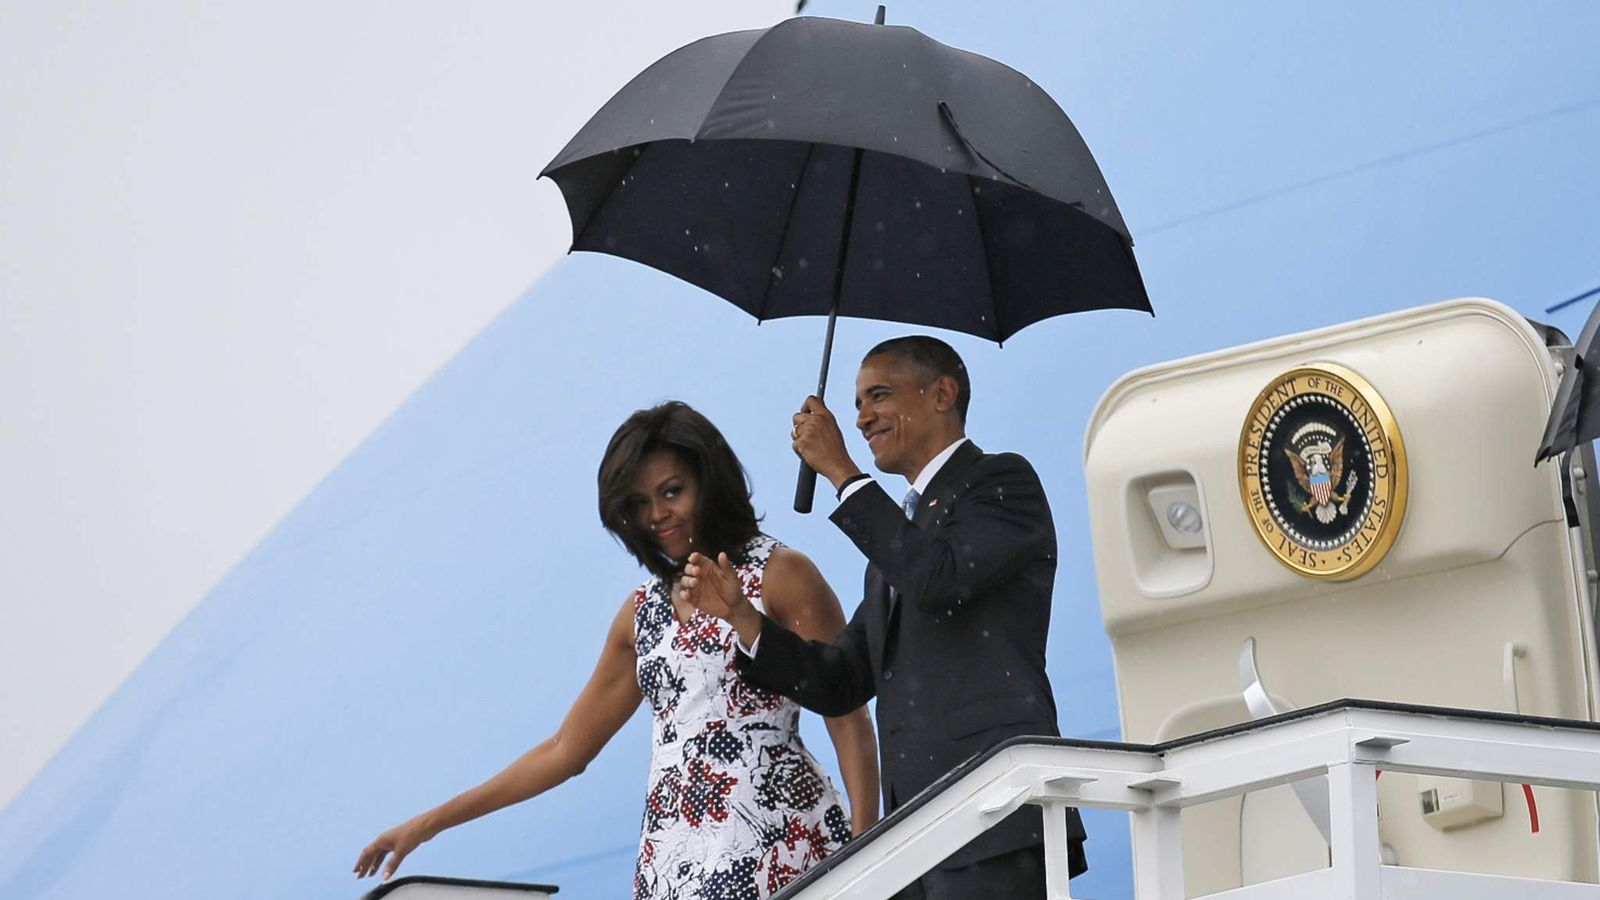 U.S. President Barack Obama and his wife Michelle exit Air Force One at Havana's airport